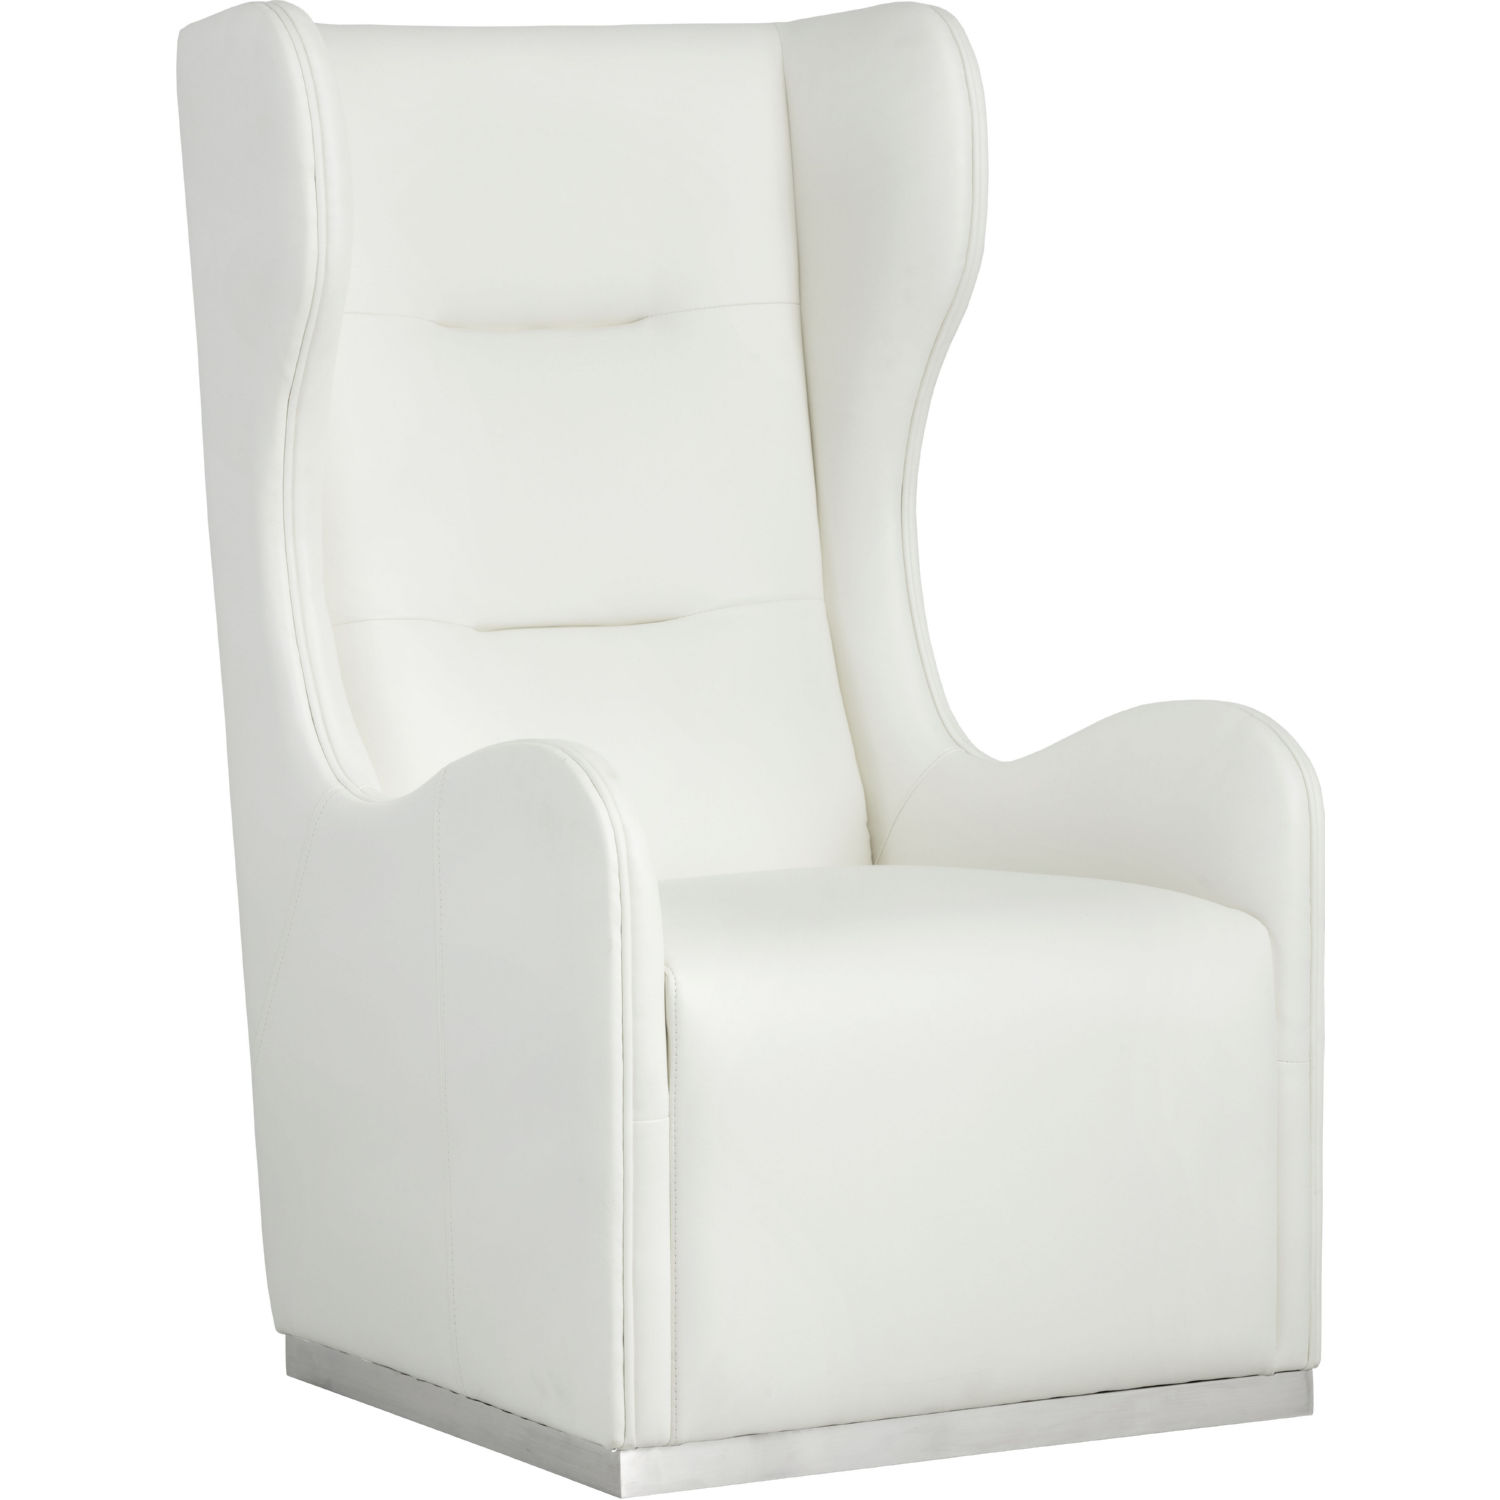 White Wing Chair Franny Swivel Wing Chair In White Leather On Polished Stainless By Sunpan